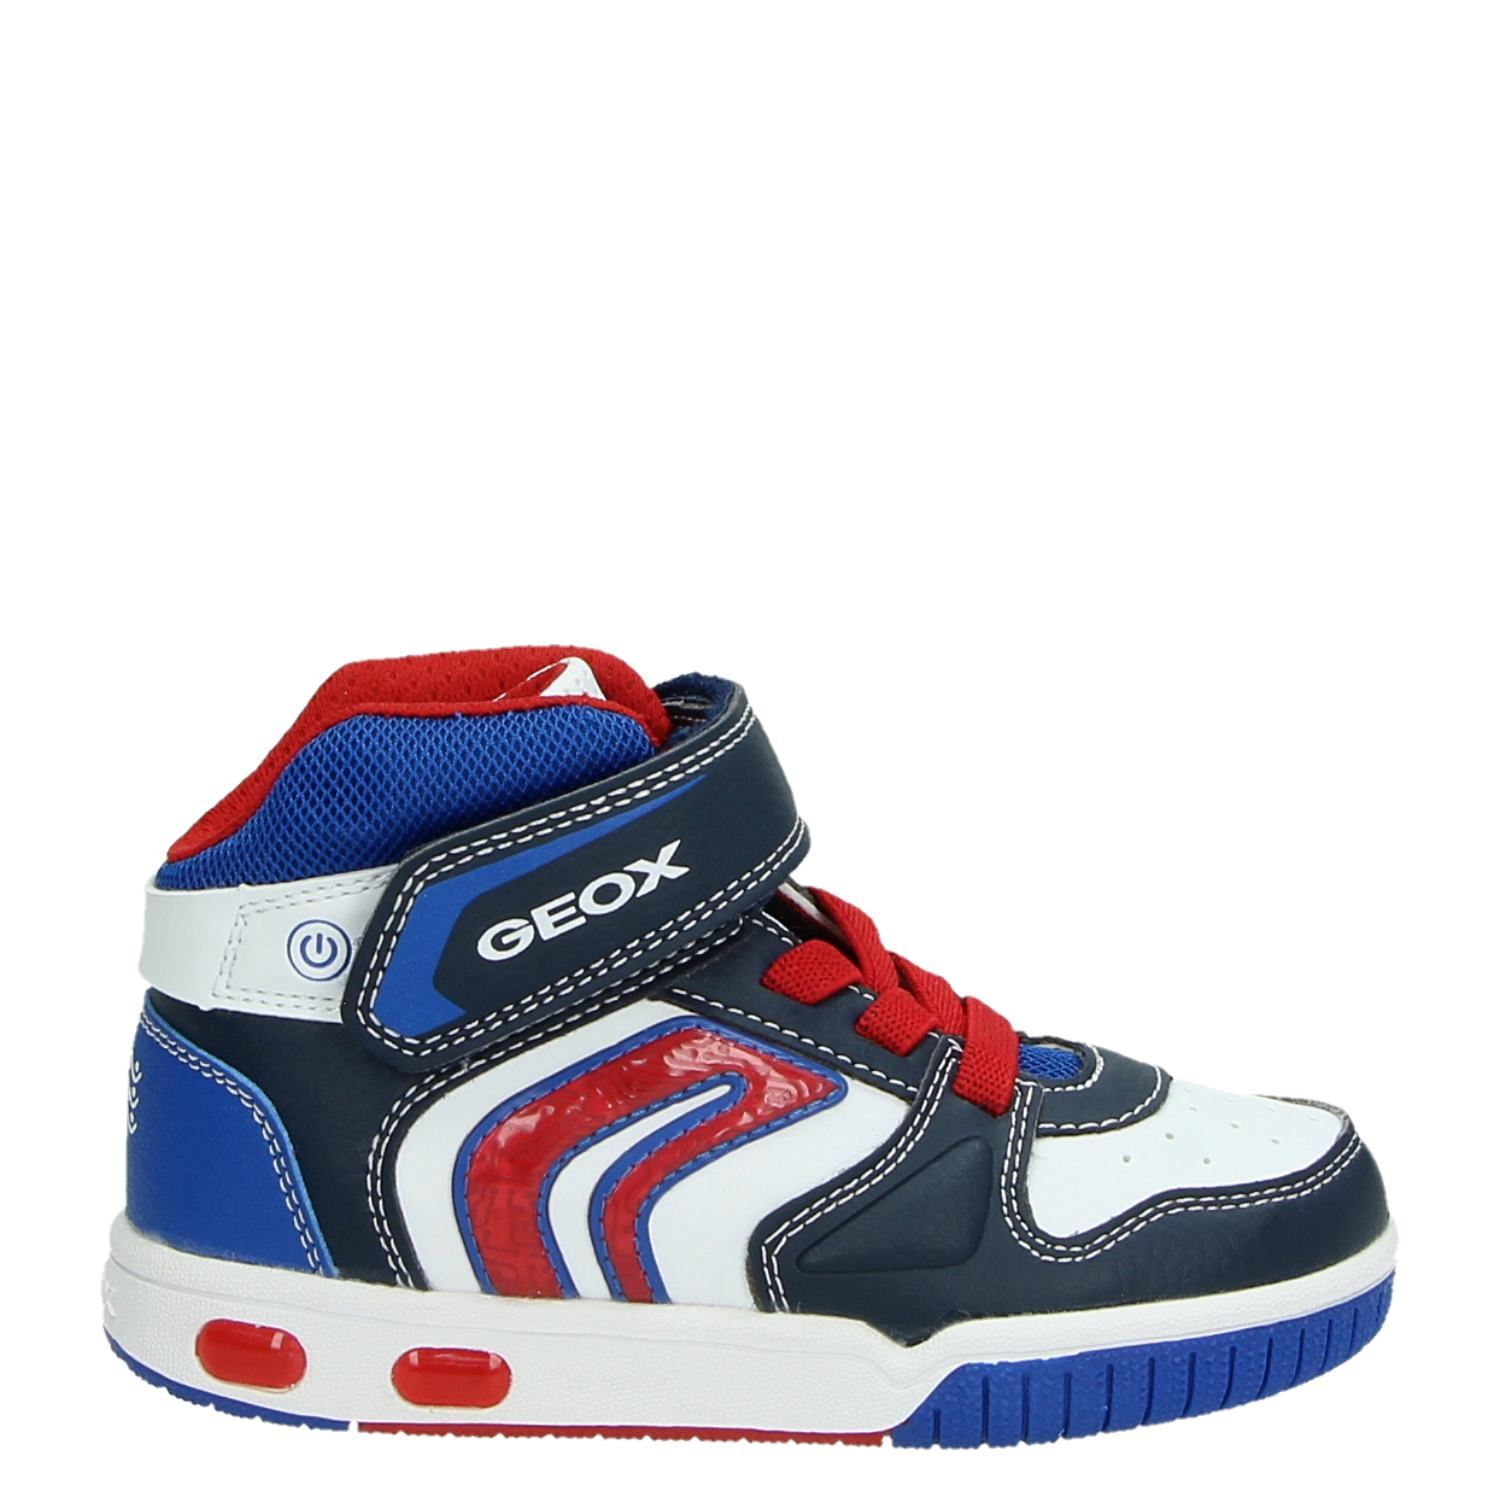 sneakers for cheap 9baec 207e7 Geox Gregg